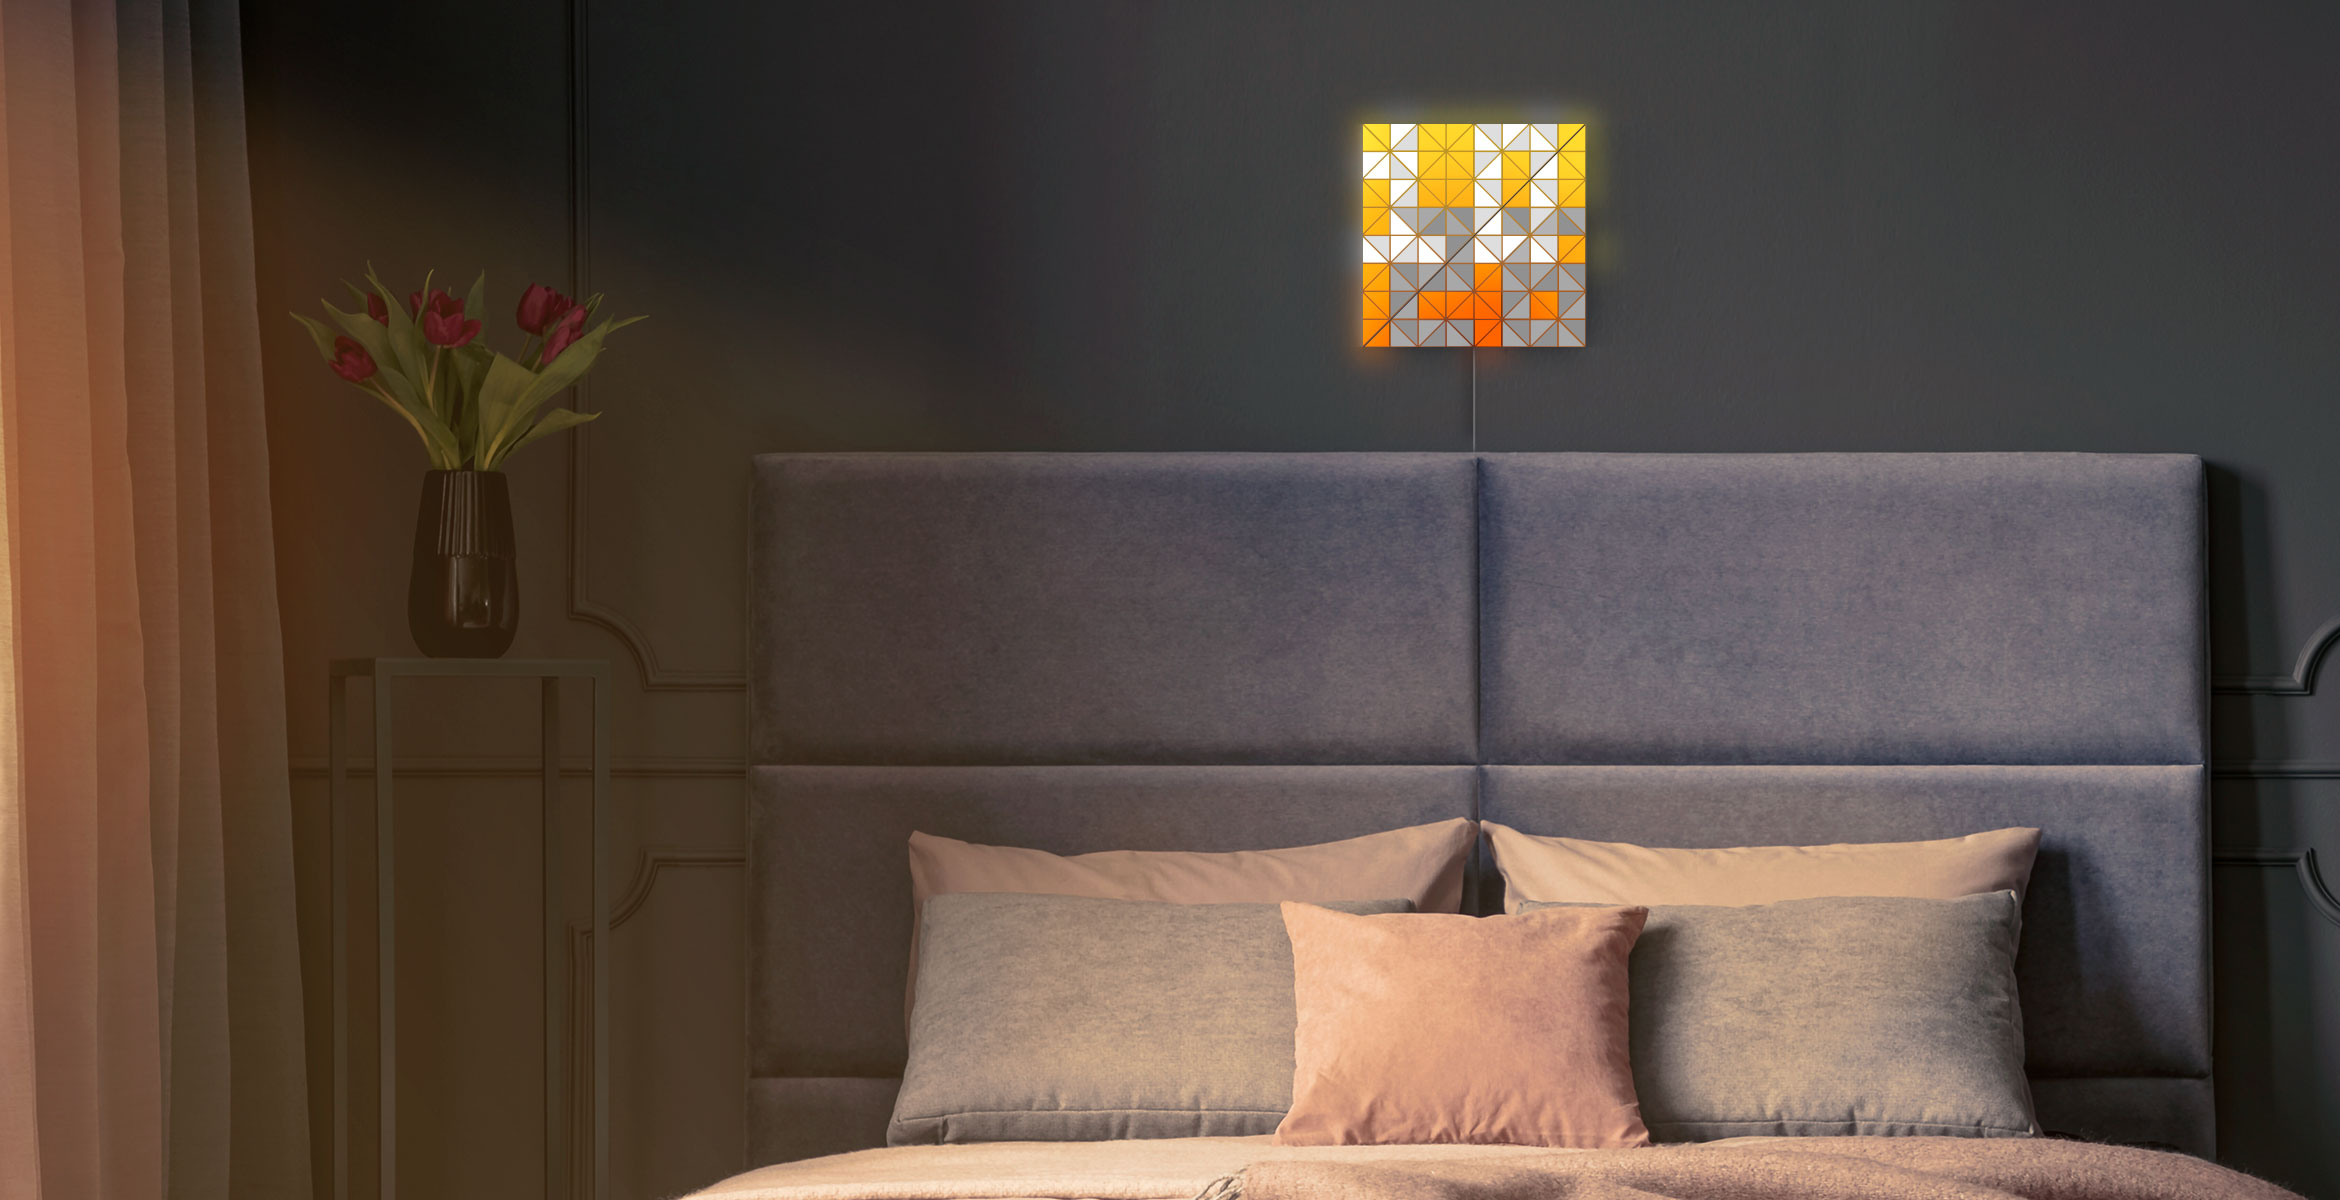 SKY face shape, assembled from 2 smart light surfaces, displays time and complements bedroom's interior